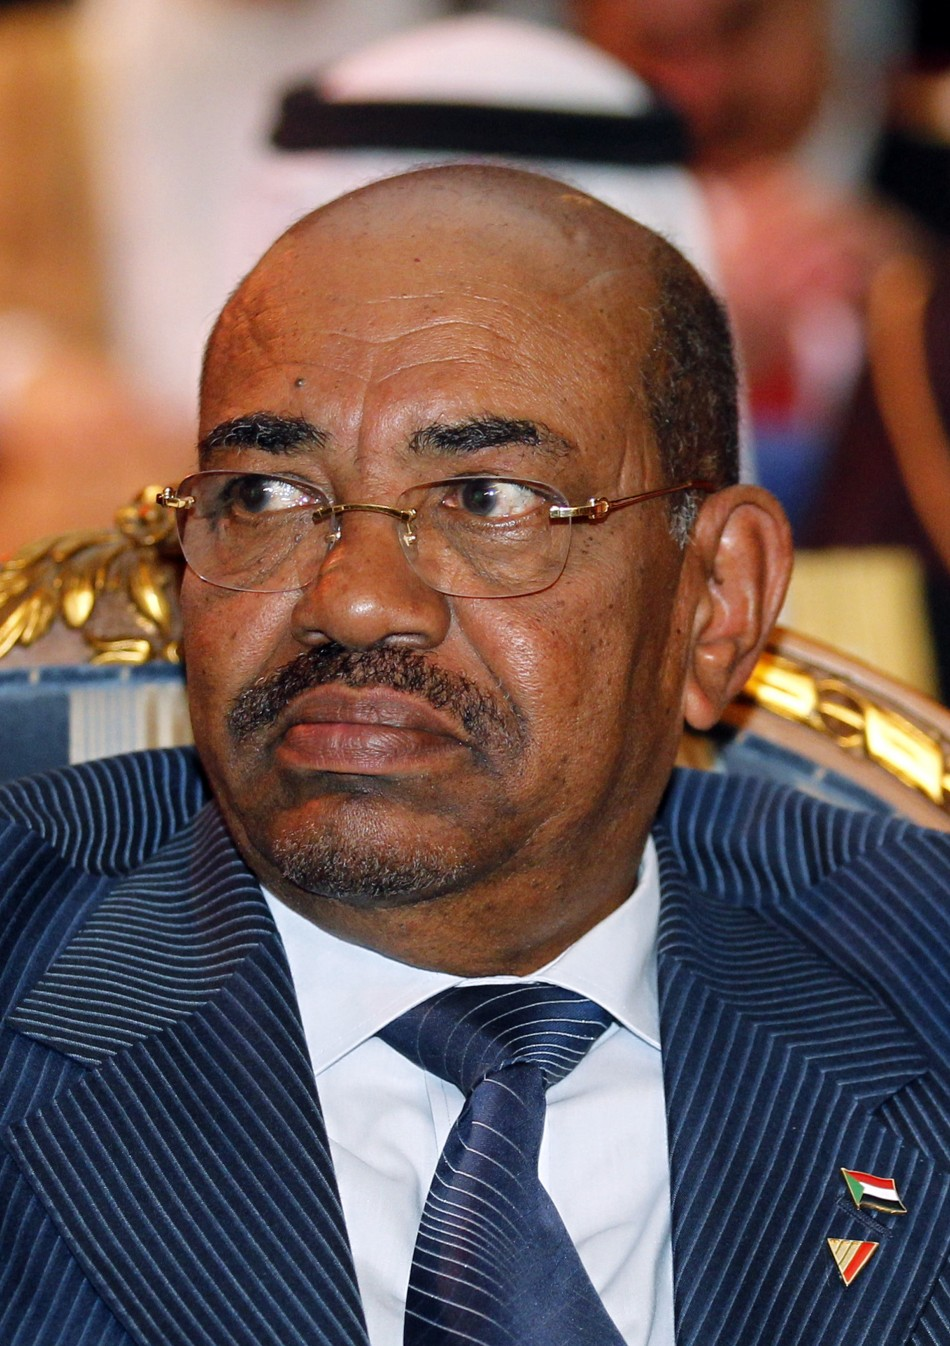 Omar al-Bashir failure yet another blow for 'toothless' International Criminal Court